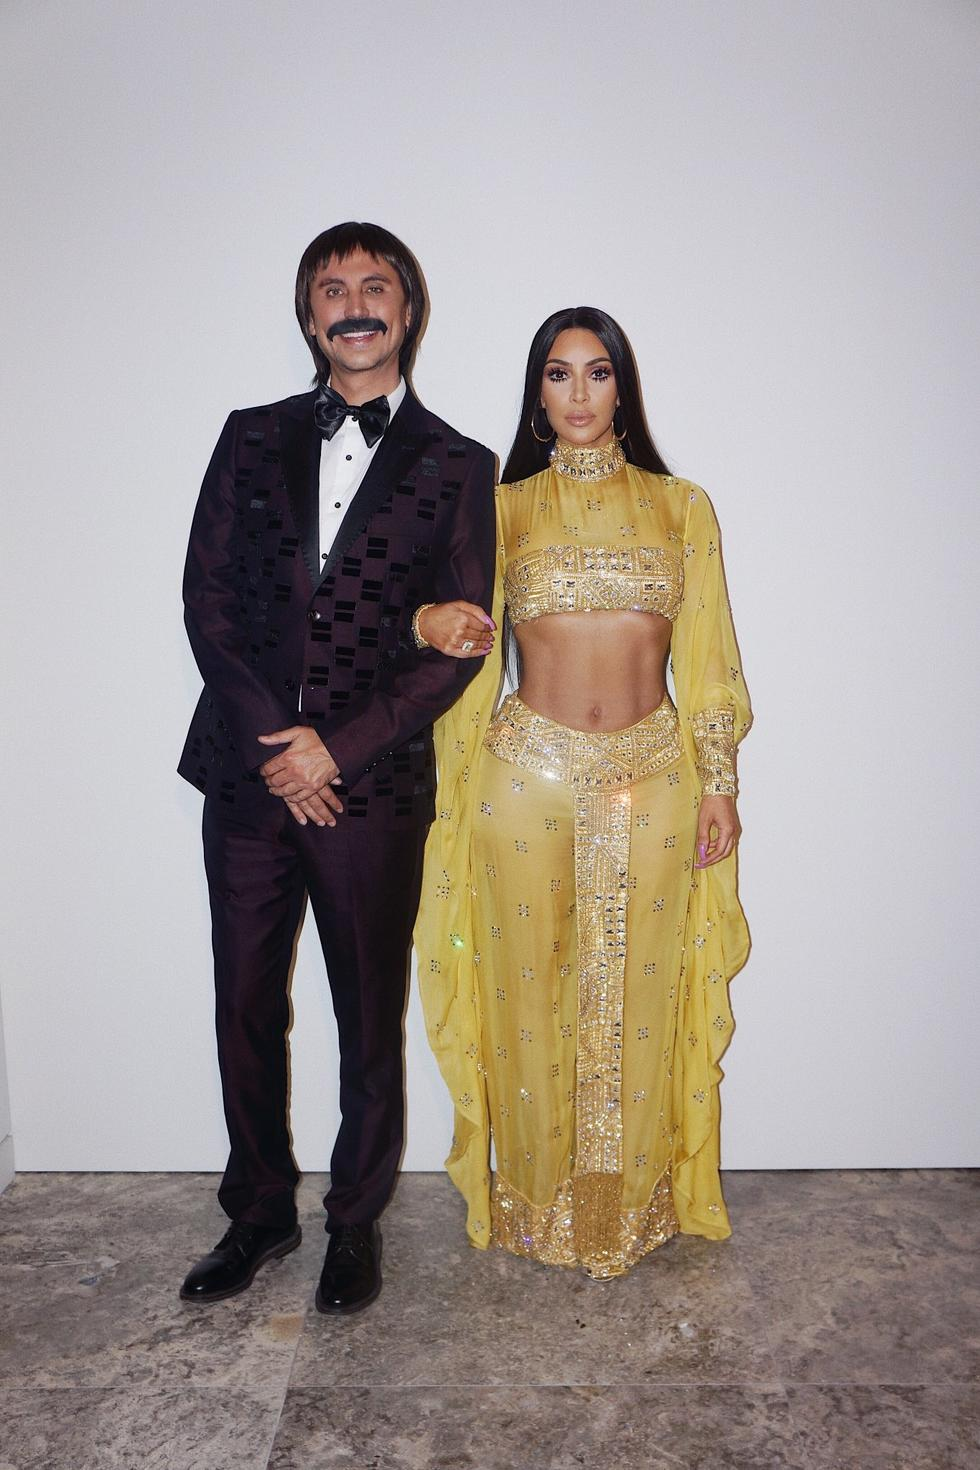 Kim Kardashian was an absolute stunner with her themed costumes recreating the looks of her favourite icons. Kim and her friend Jonathan Cheban rocked it as Sonny and Cher this Halloween...